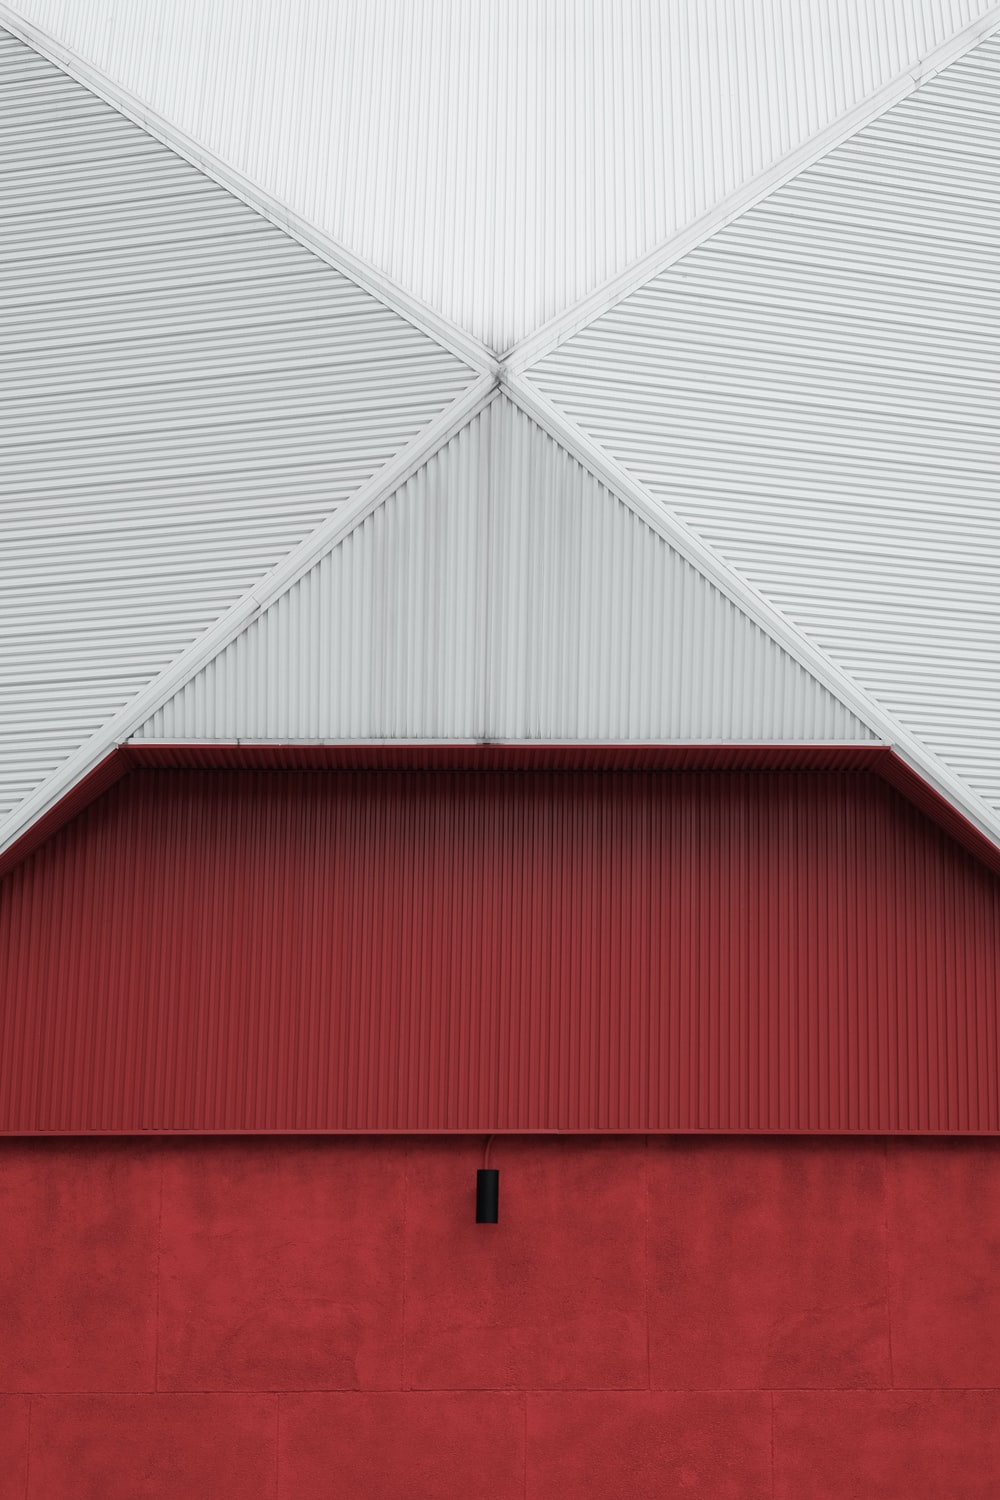 red and white wooden barn